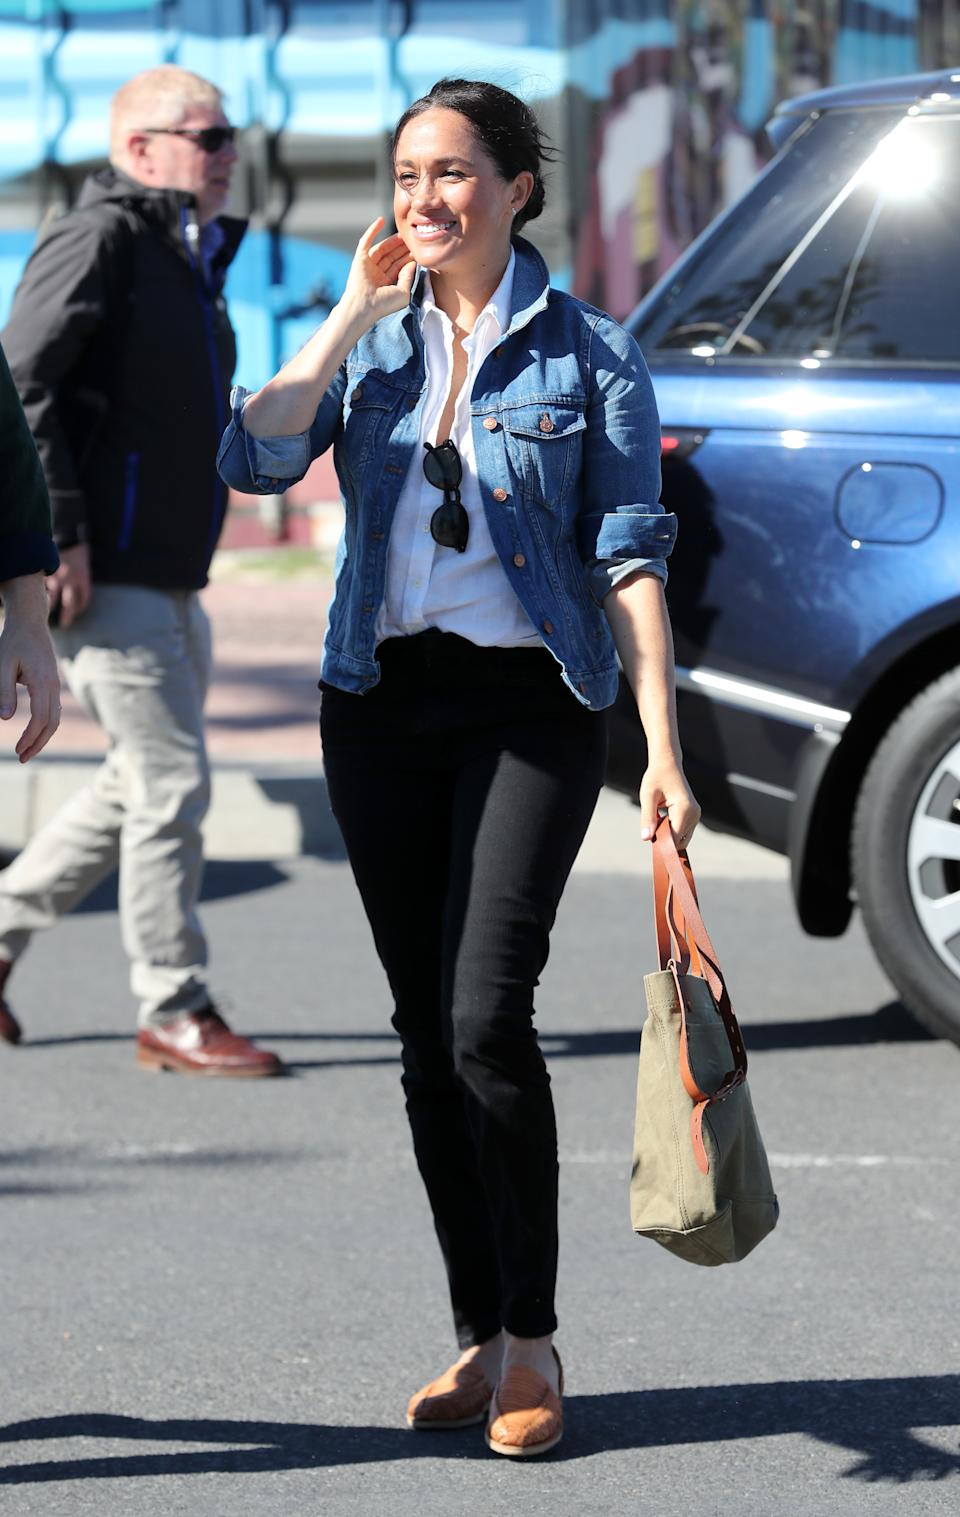 For a morning visit on day two of the tour, Meghan dressed down in a £111 denim jacket by Madewell, black jeans, a white shirt, old Brother Vellies shoes and an oversized tote bag. <em>[Photo: Getty]</em>